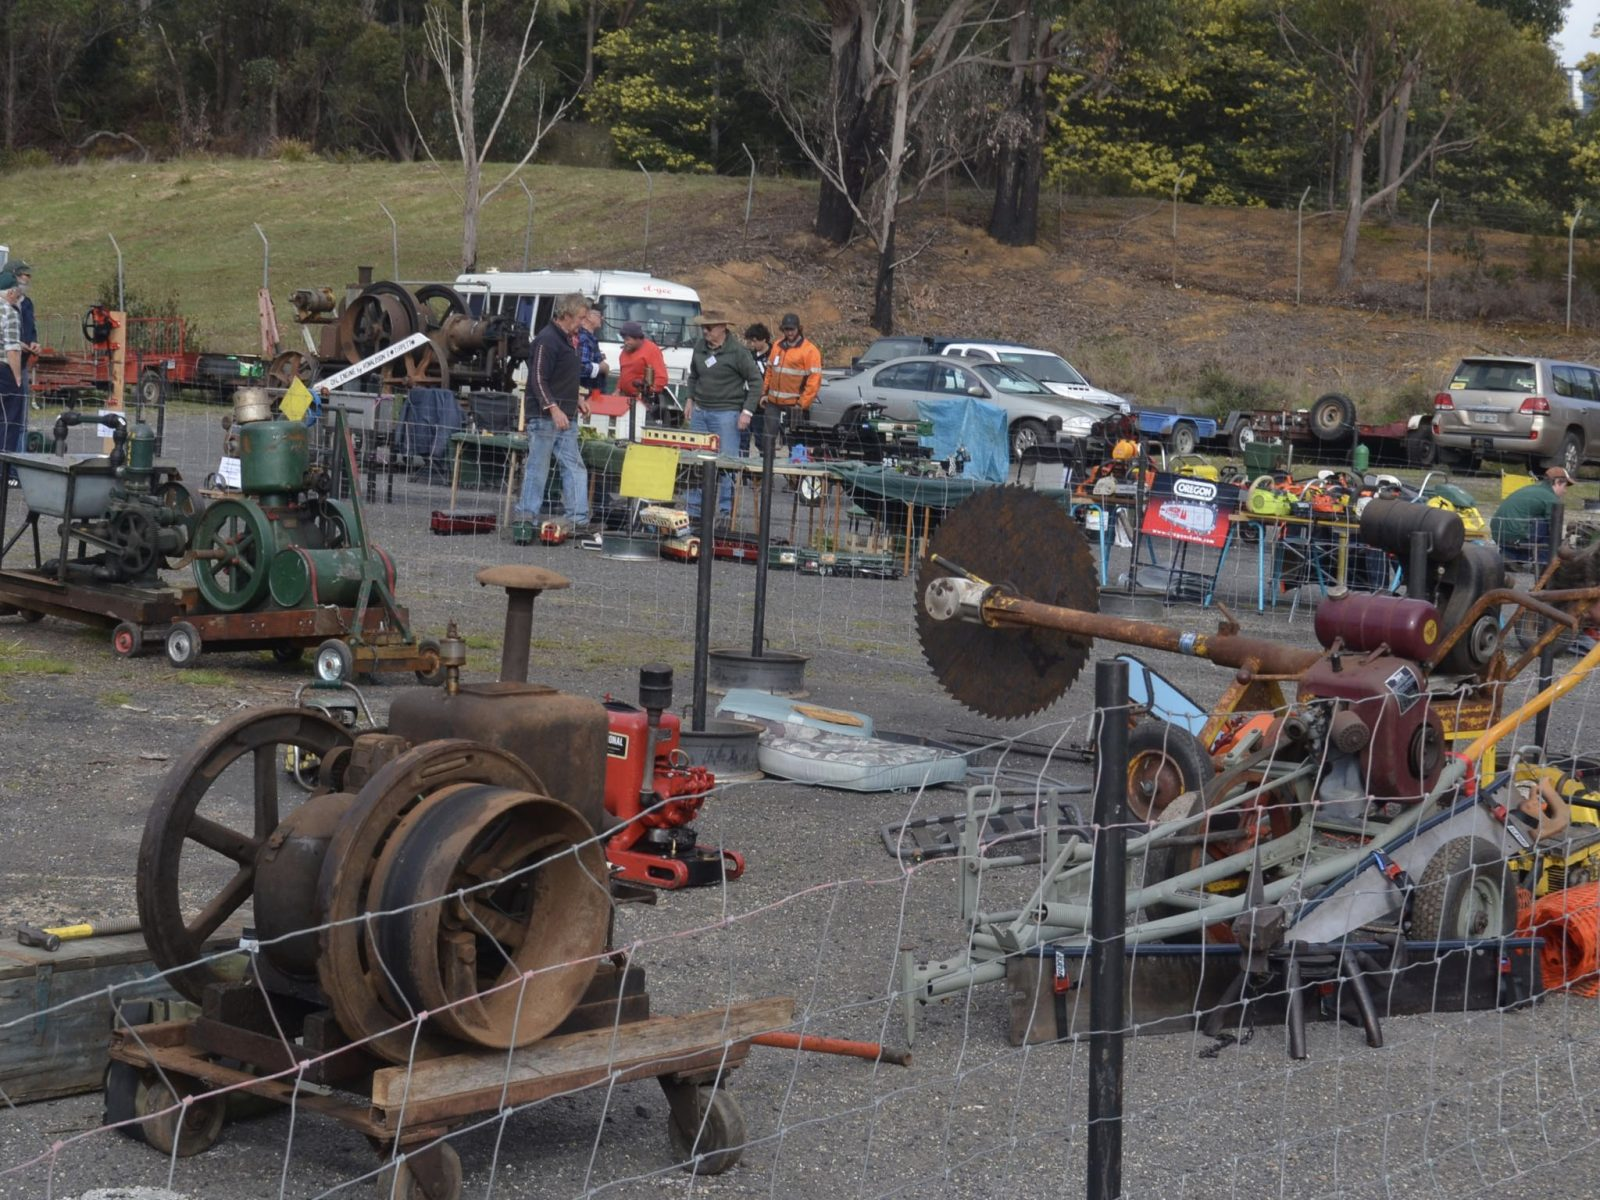 Historical Machinery Club display of vintage motors and memorabilia